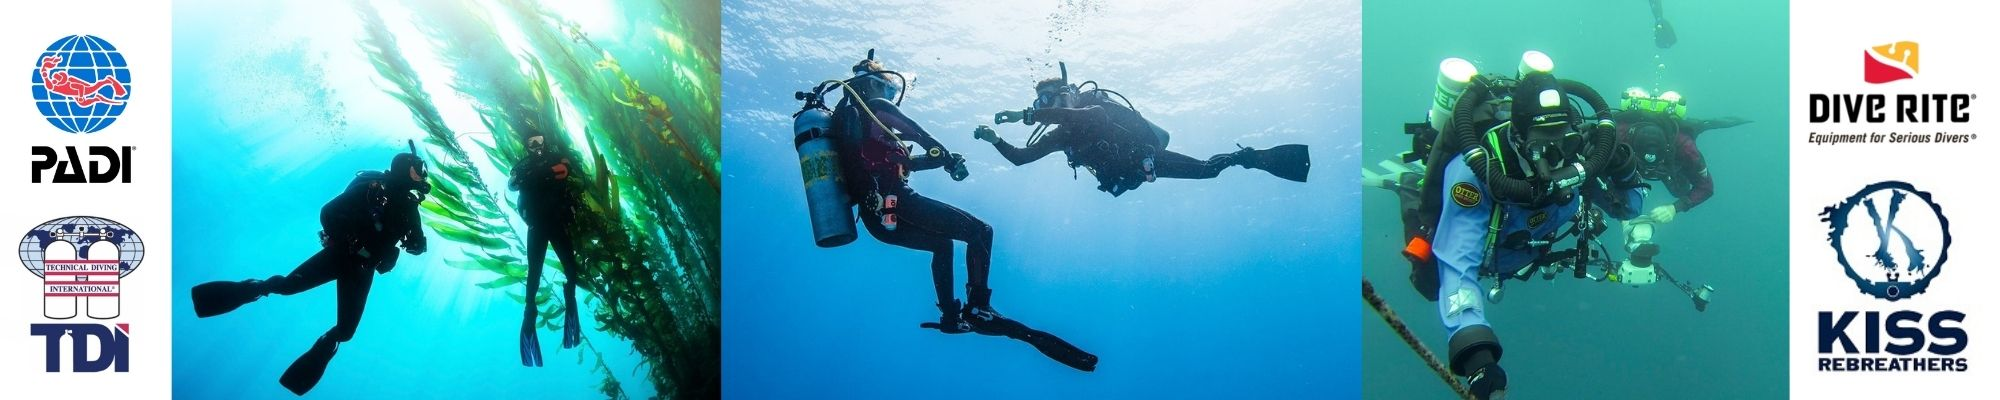 Wellington dive courses and equipment scuba diving freediving and rebreathers ccr